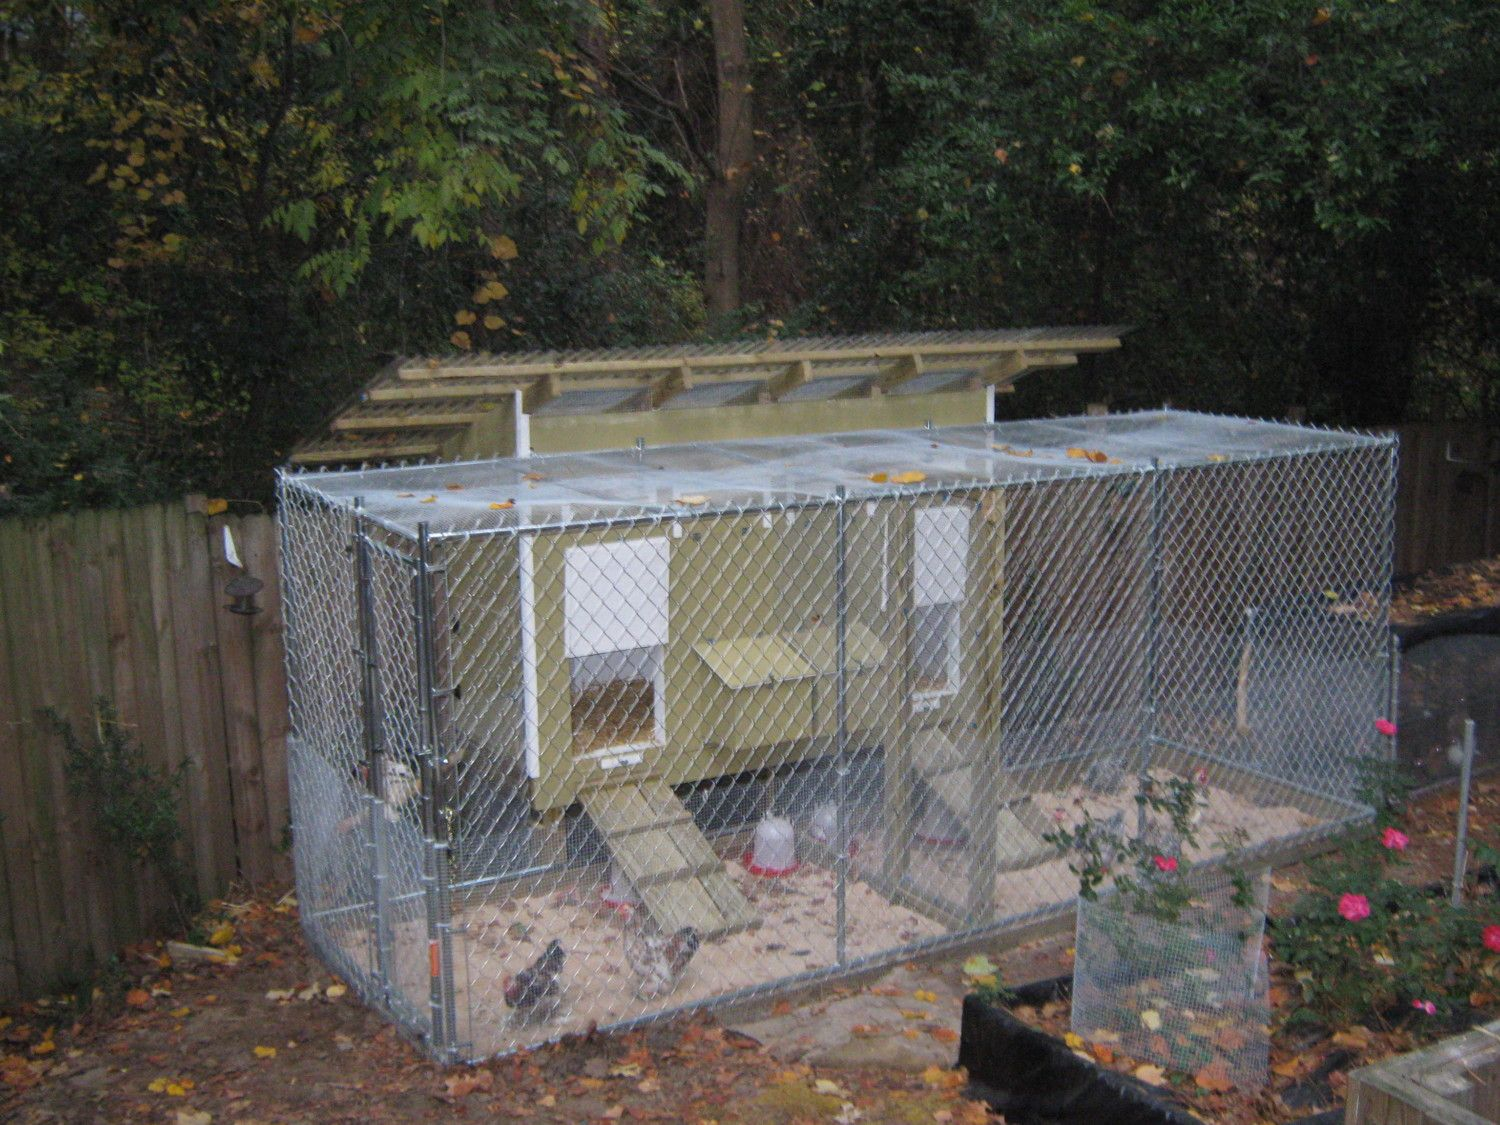 10x10 dog kennel as open coop tips | BackYard Chickens